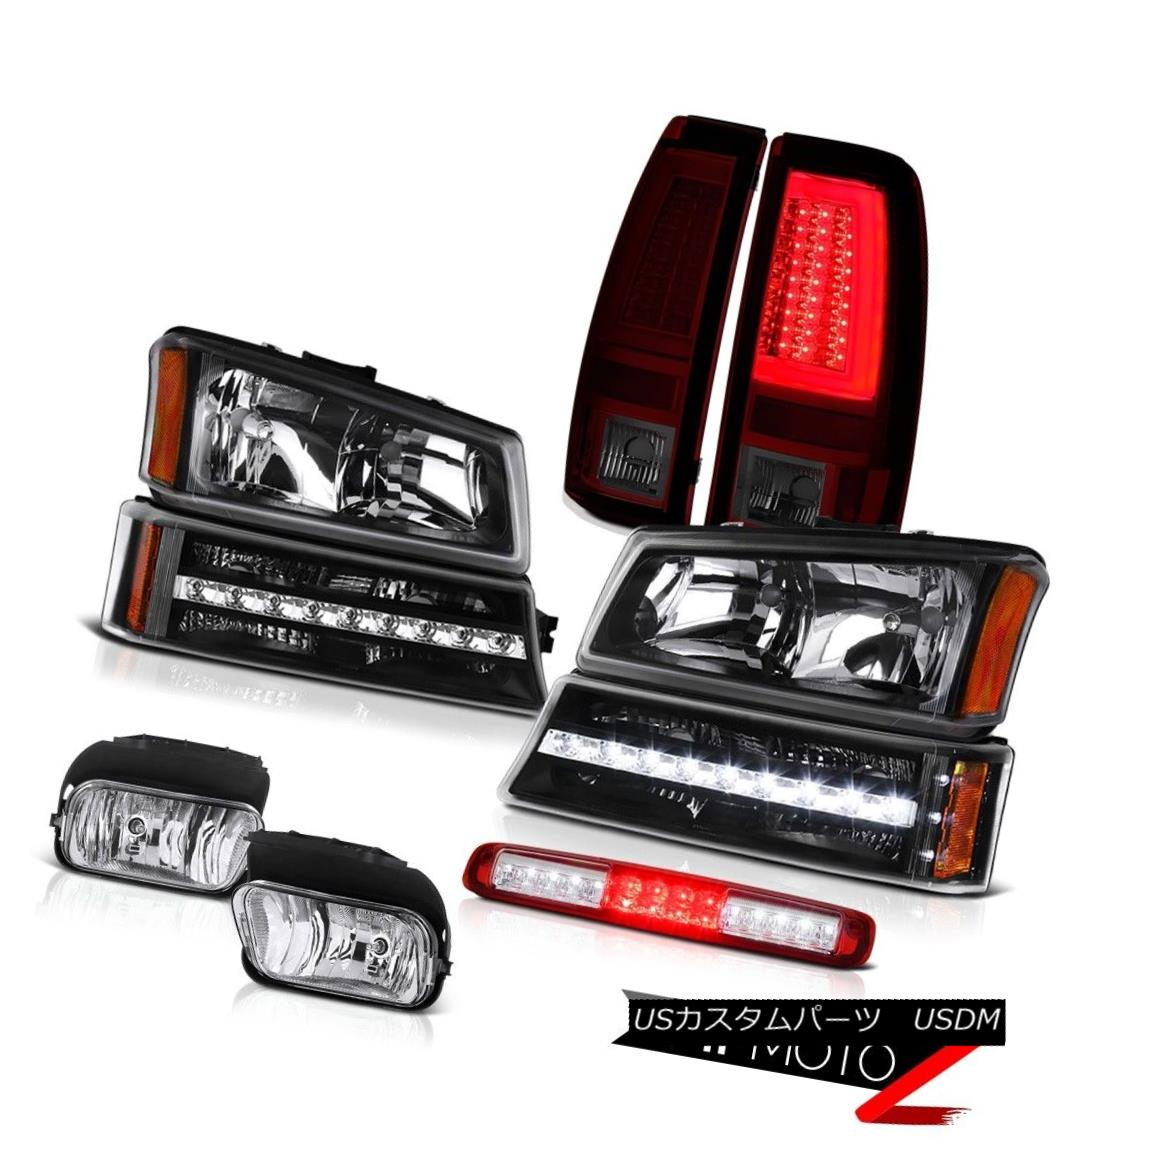 テールライト 2003-2006 Silverado Taillamps Foglamps Roof Cab Lamp Headlamps Parking Tron Tube 2003-2006 Silverado Taillamps Foglampsルーフキャブ・ランプヘッドランプパーキングTron Tube